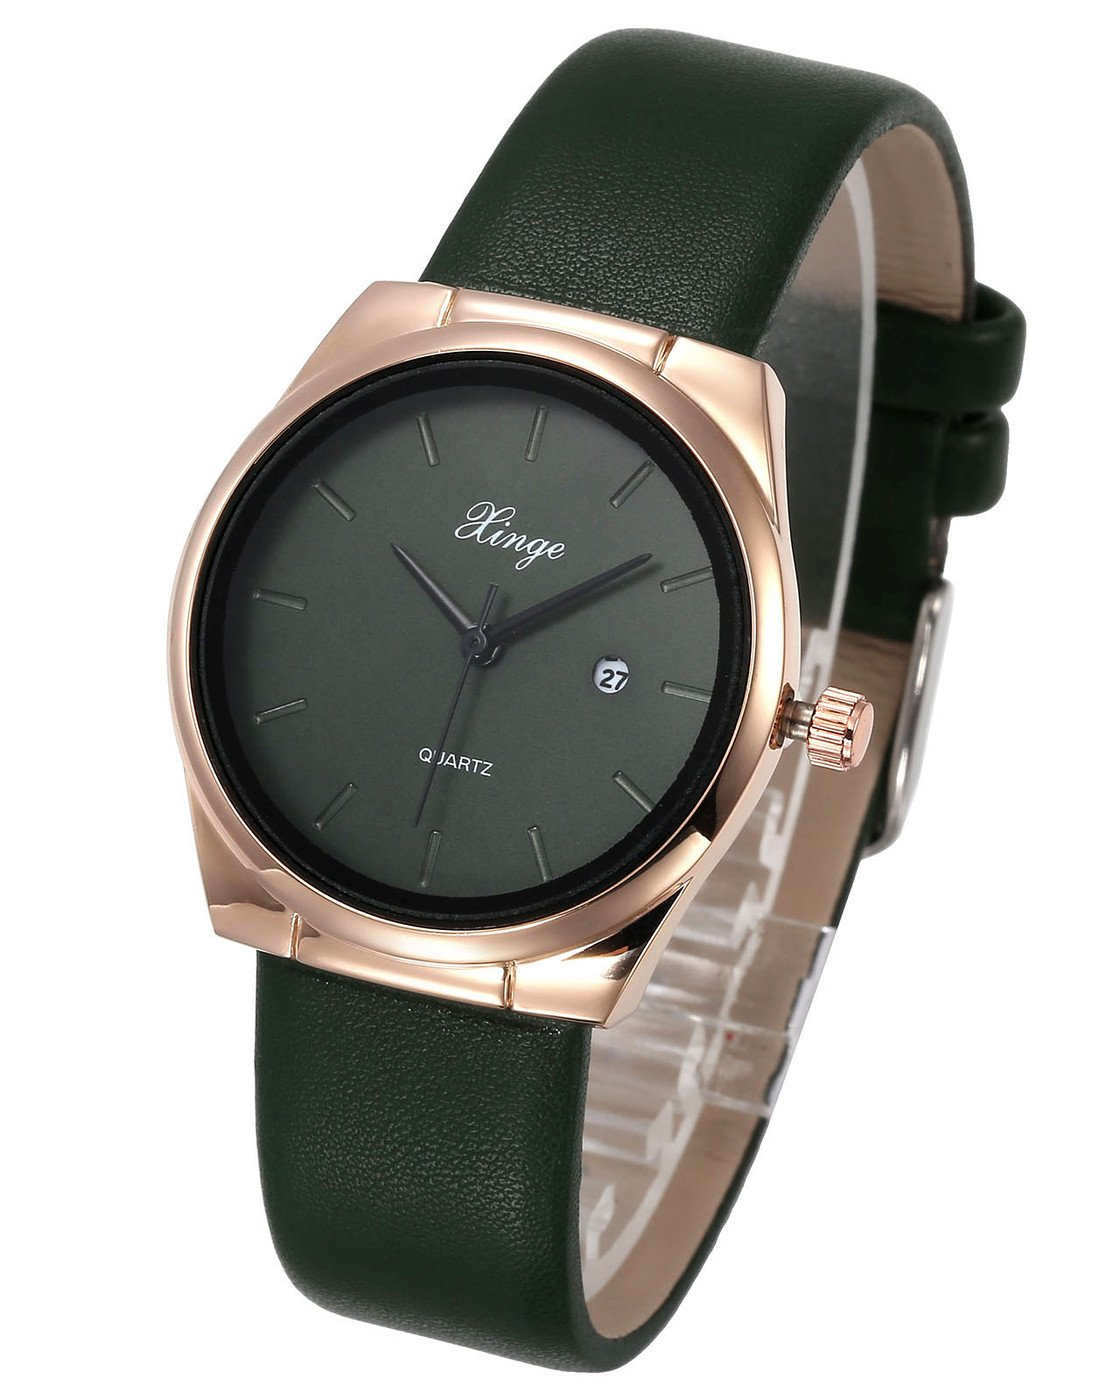 Top Plaza Unisex Casual Simple Rose Gold Tone Leather Band 30M Waterproof Business Analog Quartz Wristwatch with Calendar - Dark Green